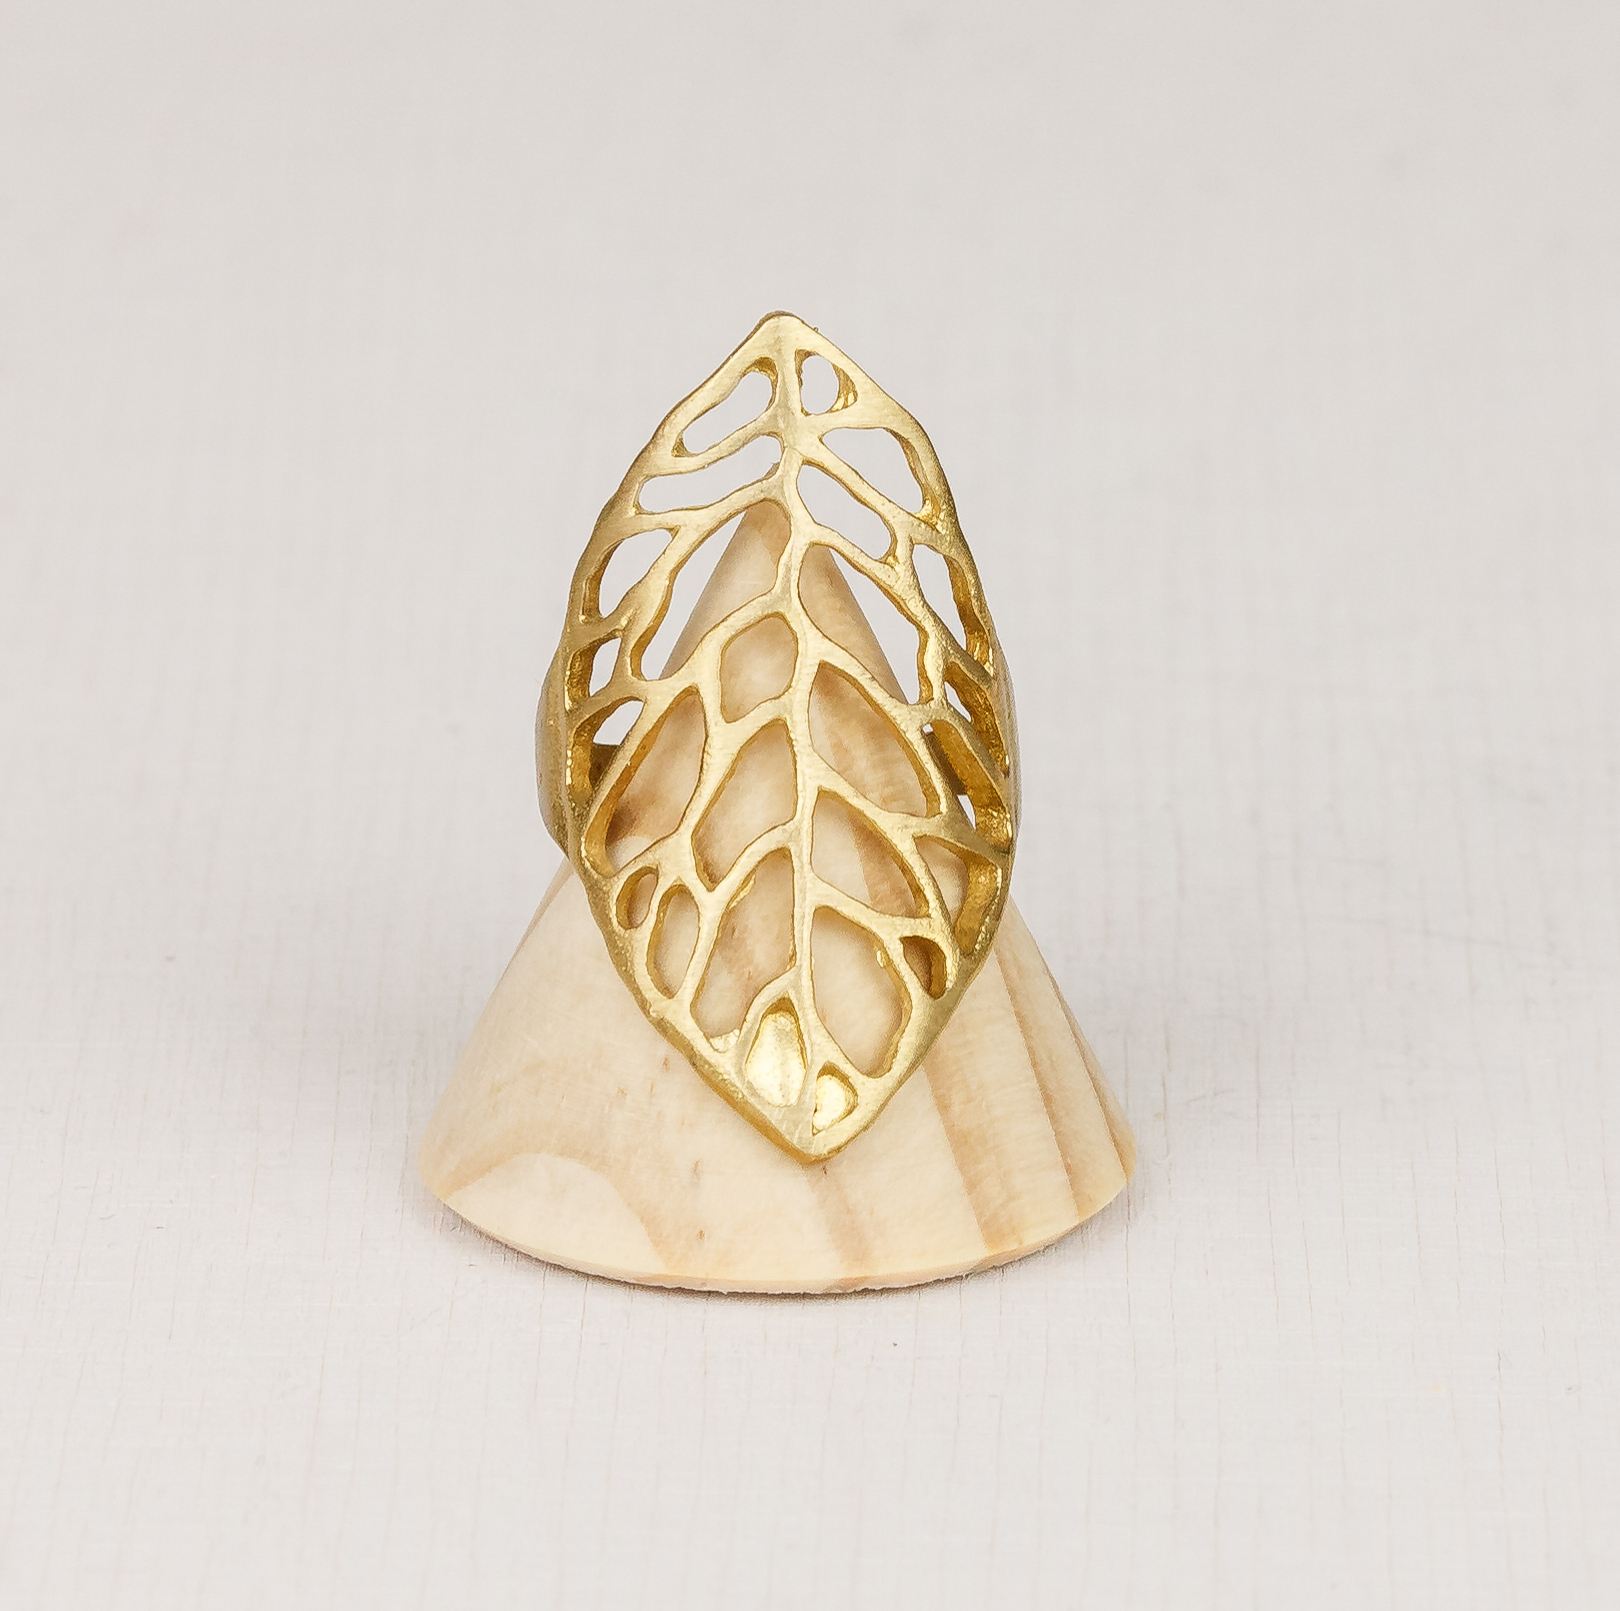 Cut-out Leaf Adjustable Brass Ring by State of A